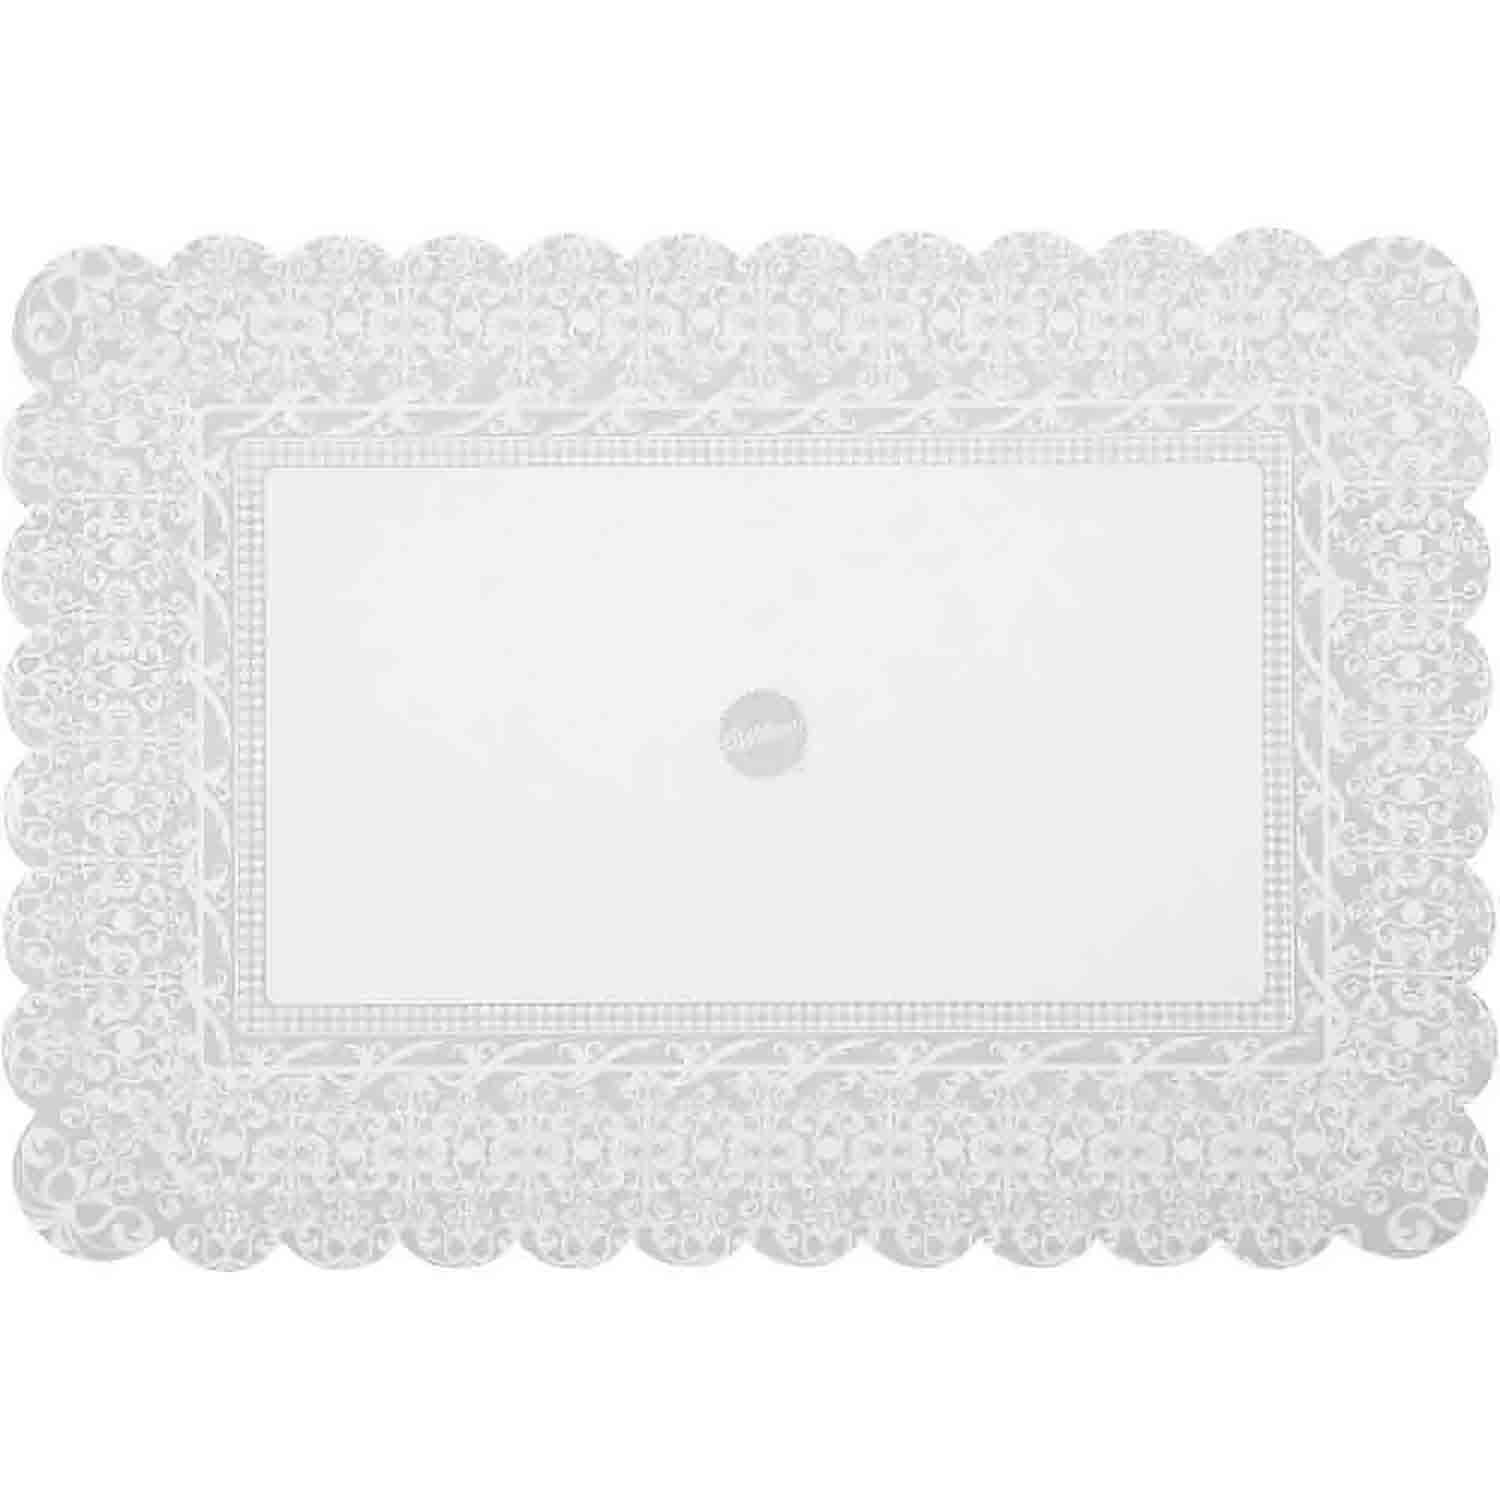 "14 x 20"" Half Sheet Cake Serving Boards"